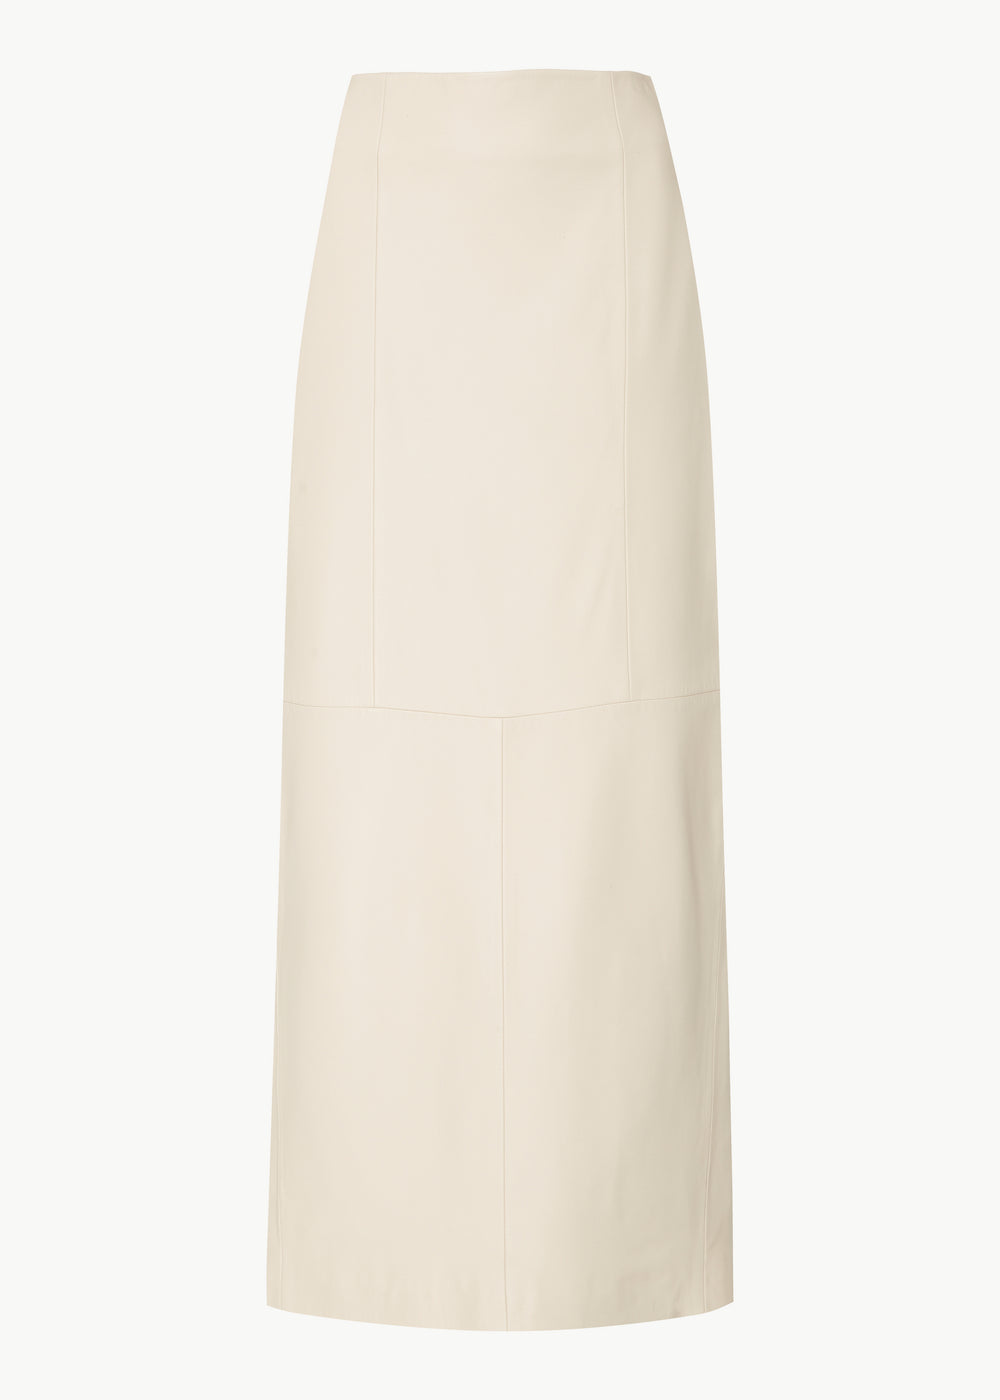 High Waisted Pencil Skirt in Lambskin - Ivory - CO